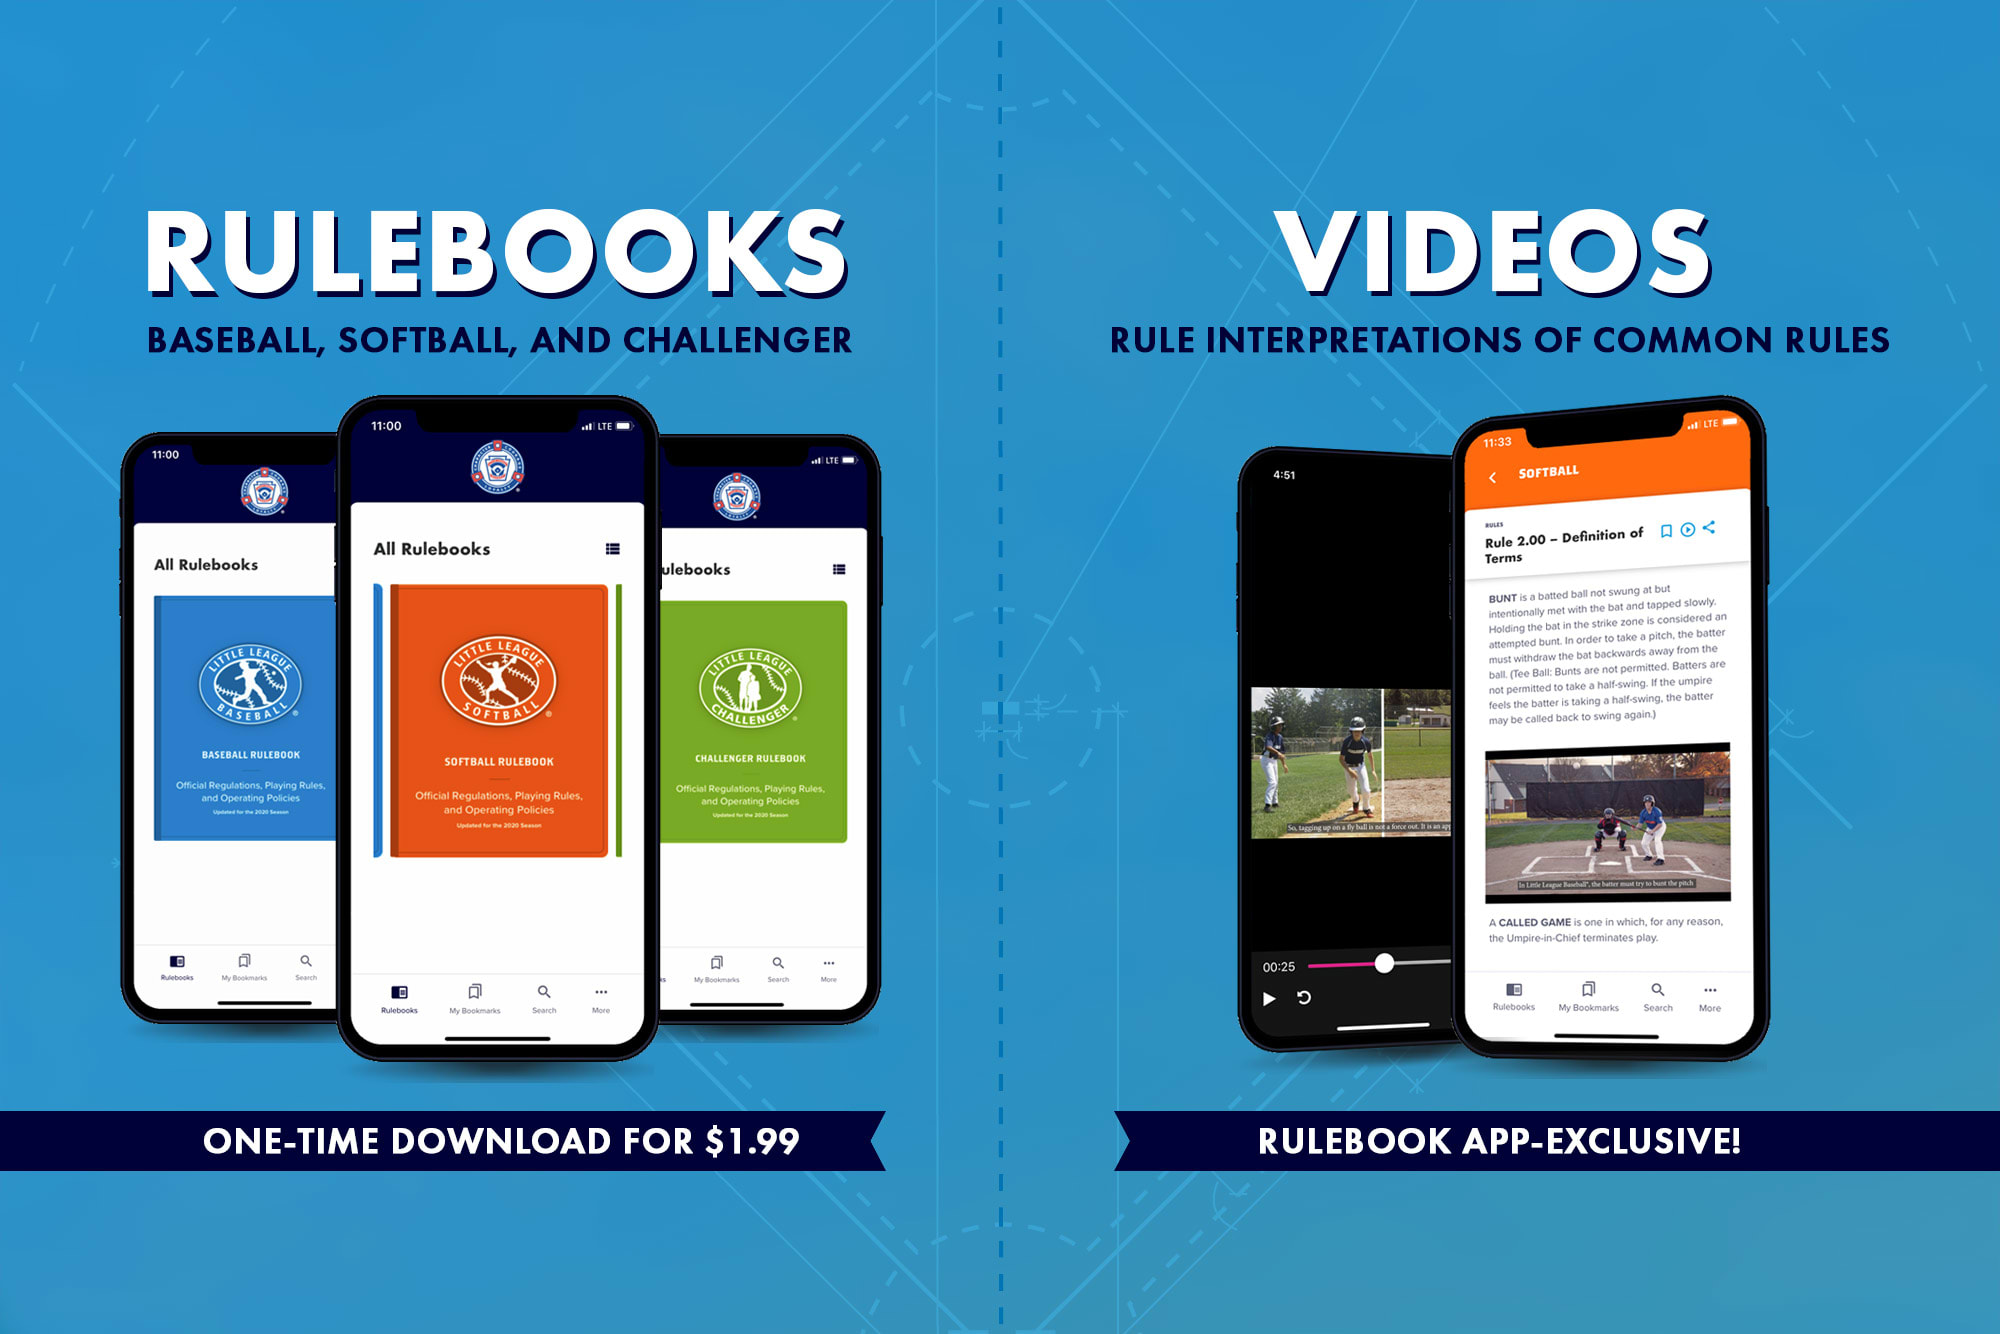 rulebook app rulebooks and videos